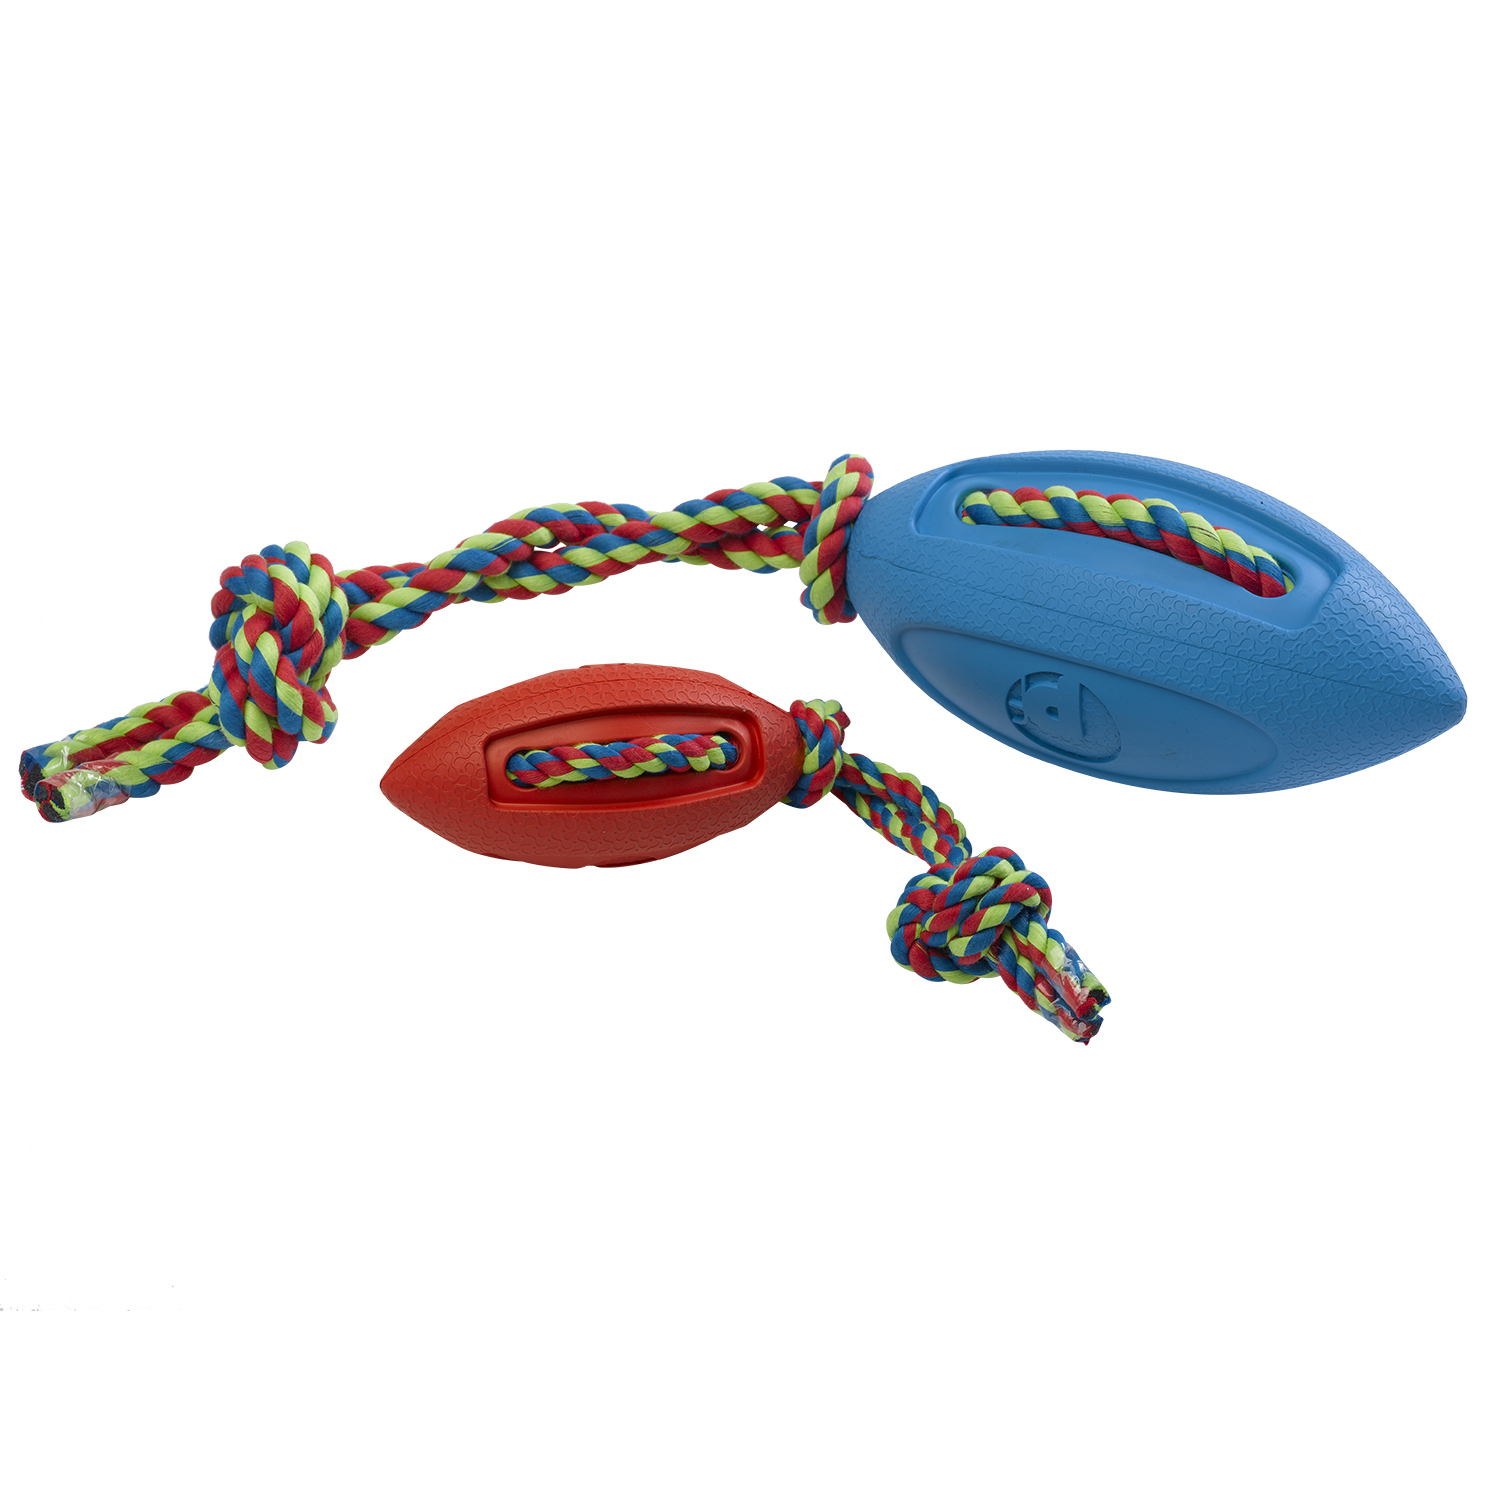 petface toyz rugby tugger dog puppy tug chase fun